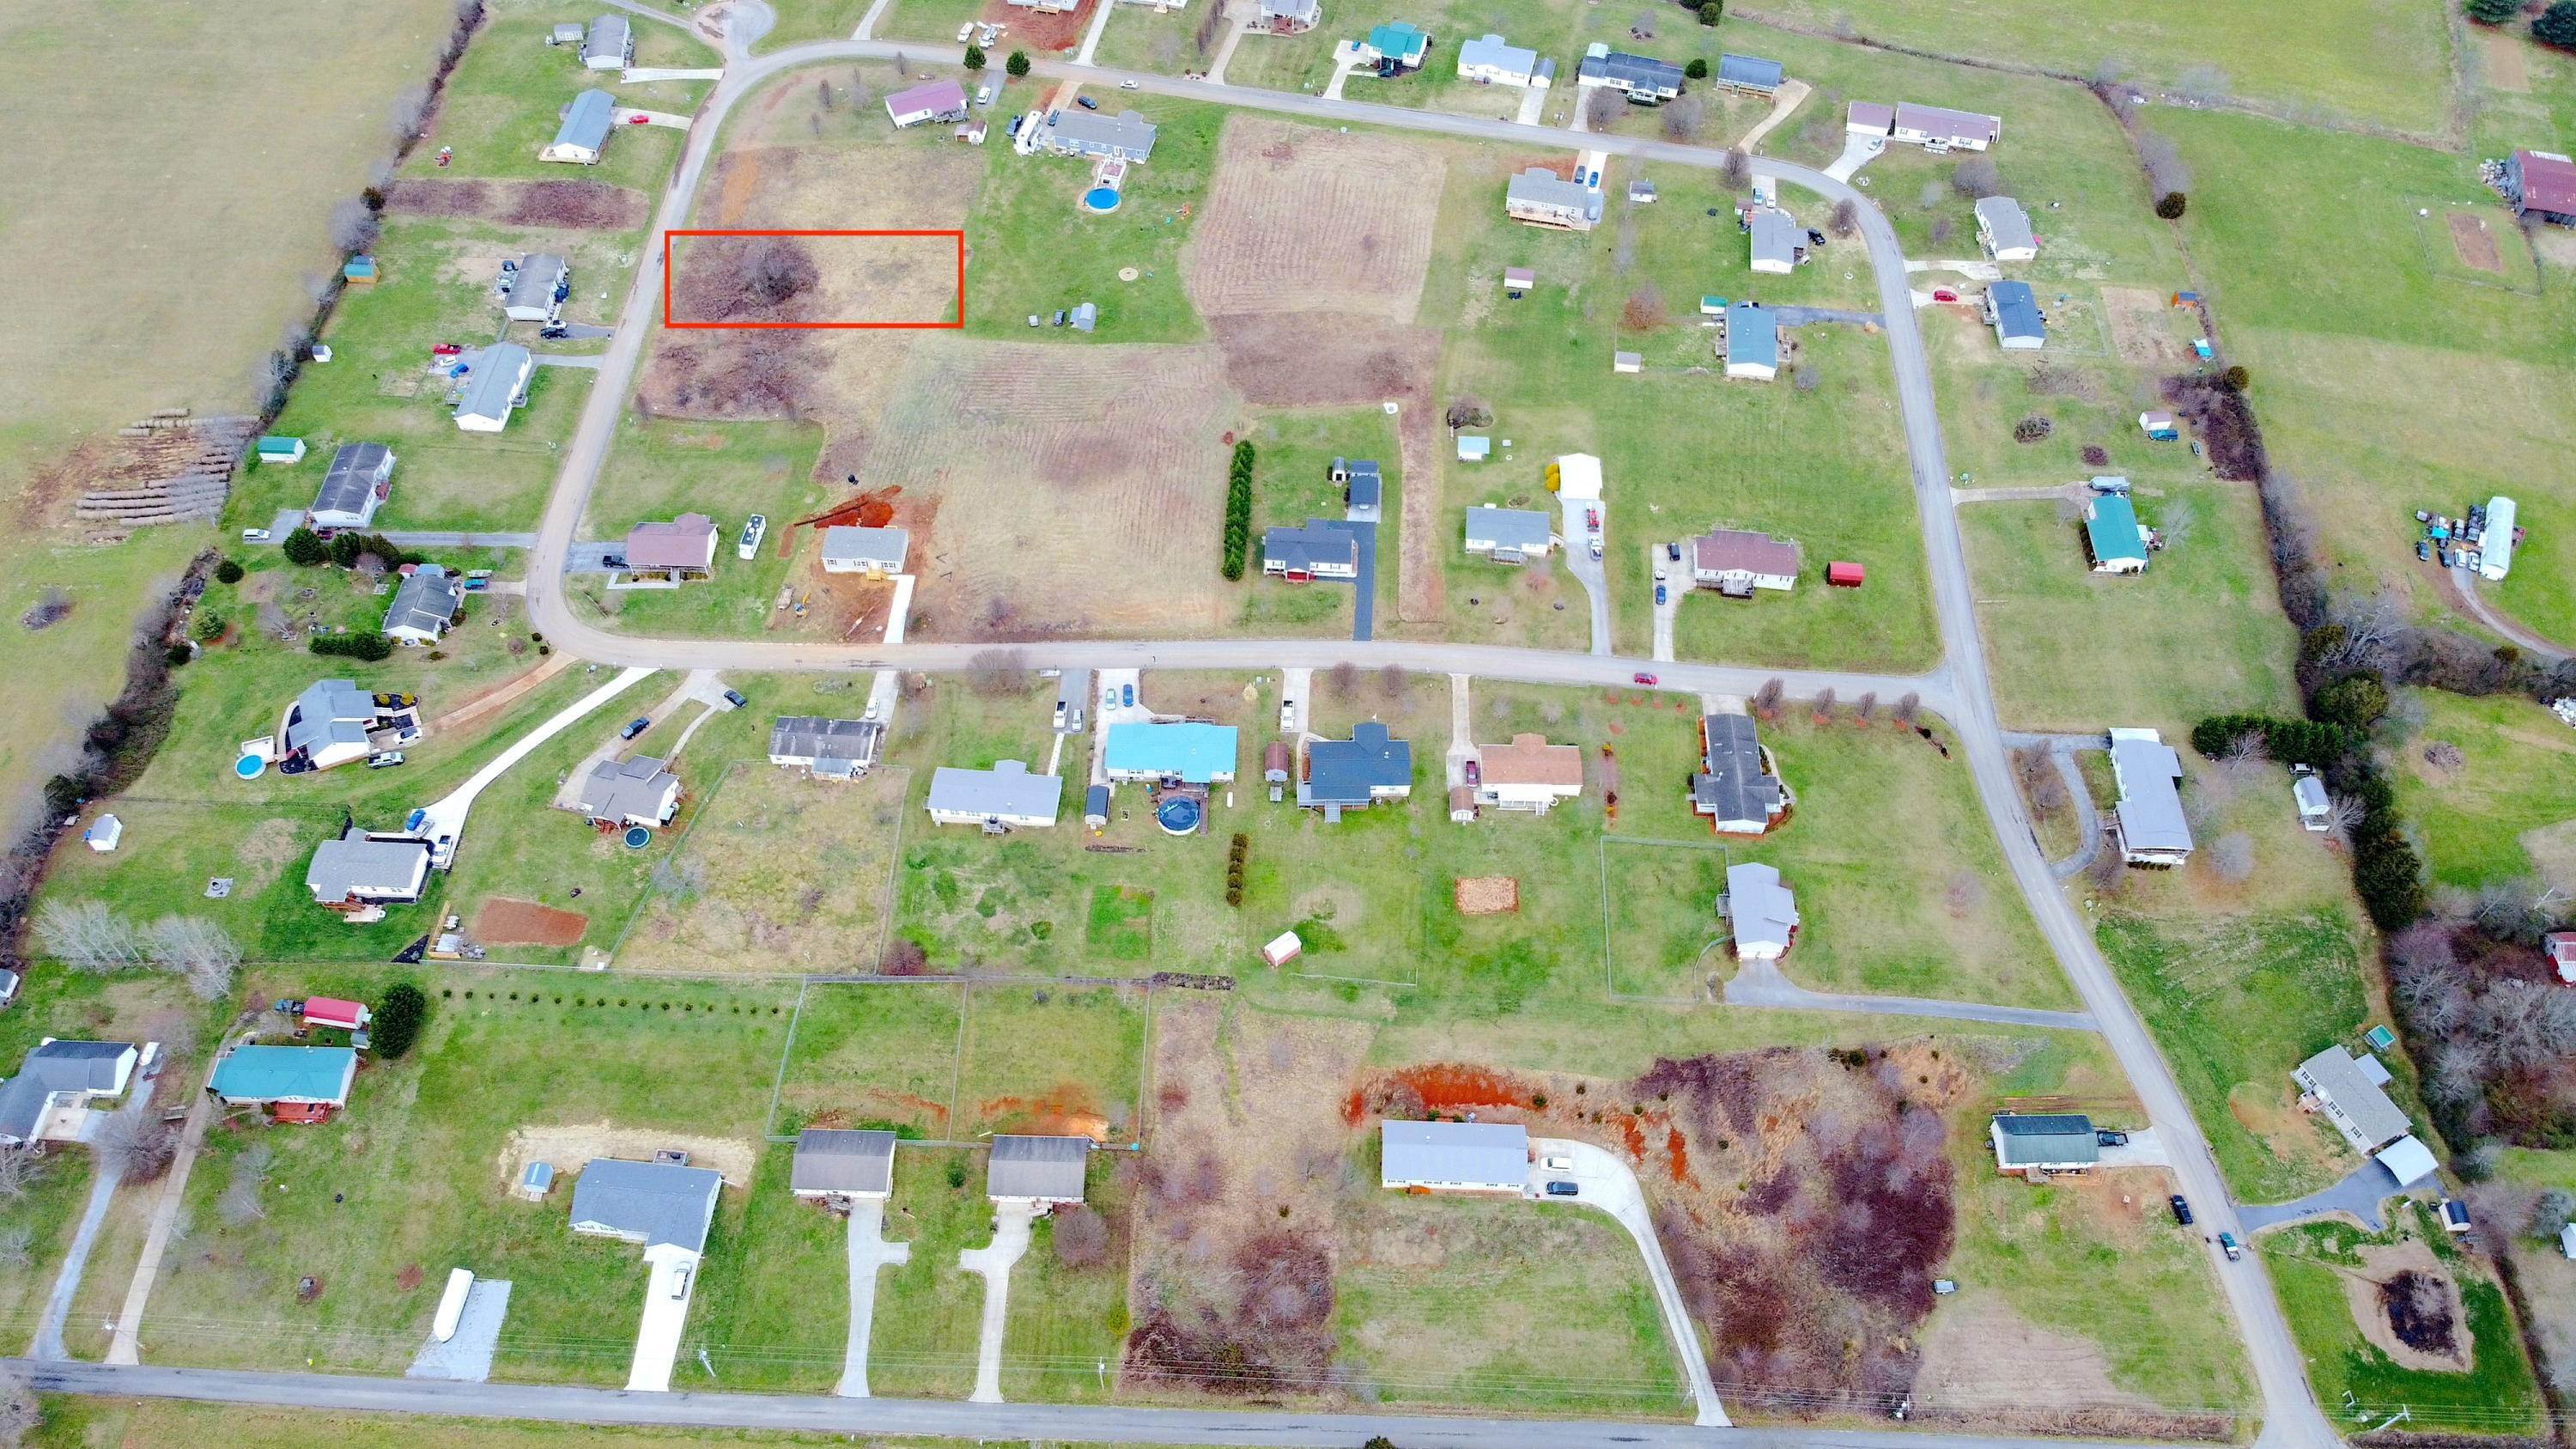 Terreno por un Venta en Ebenezer Loop Lot 60 Chuckey, Tennessee 37641 Estados Unidos